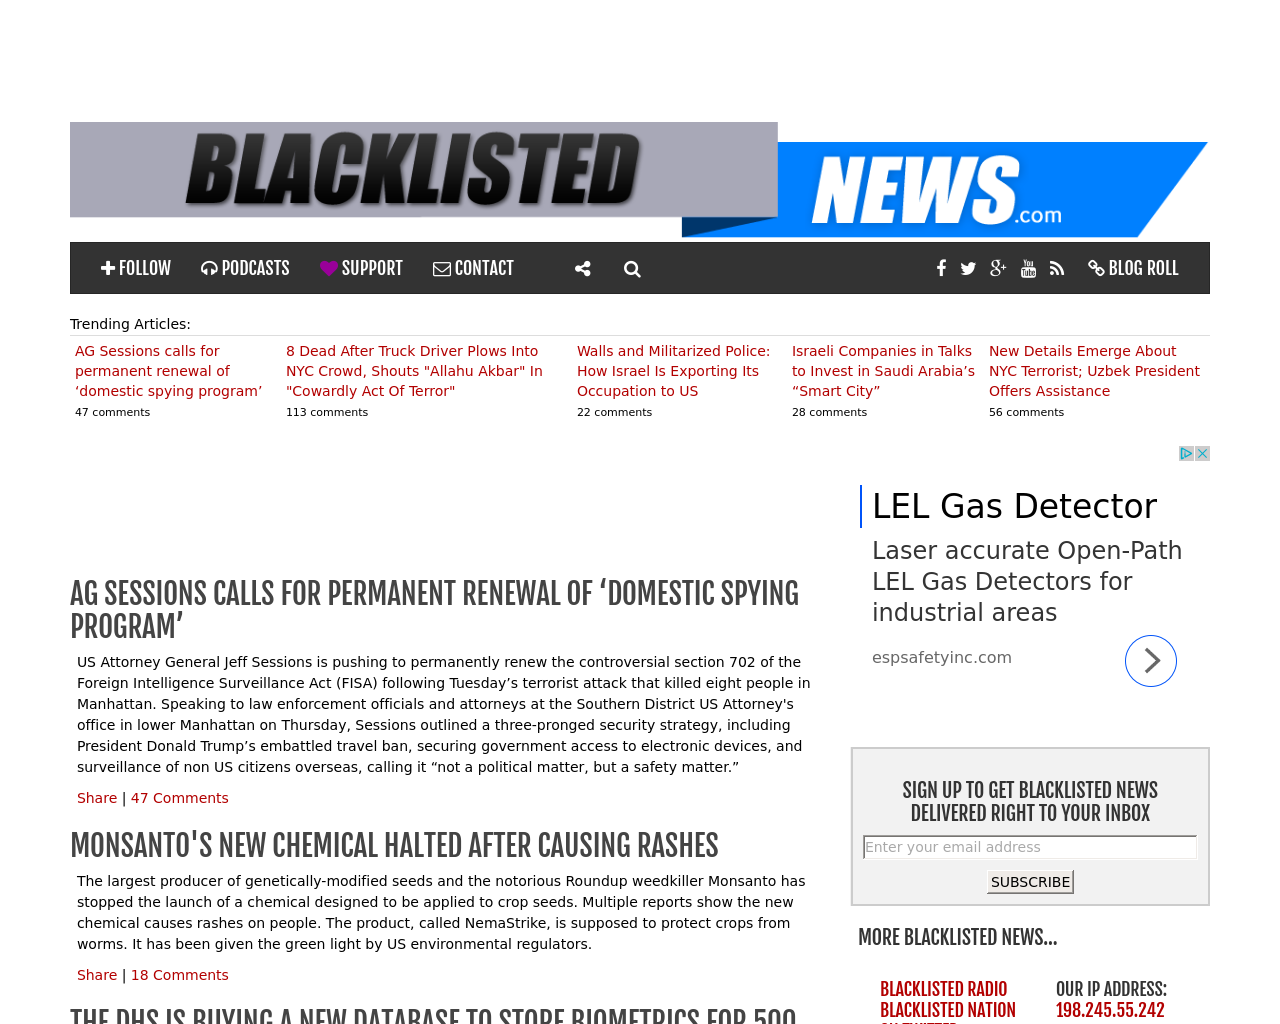 BlackListed-News-Advertising-Reviews-Pricing